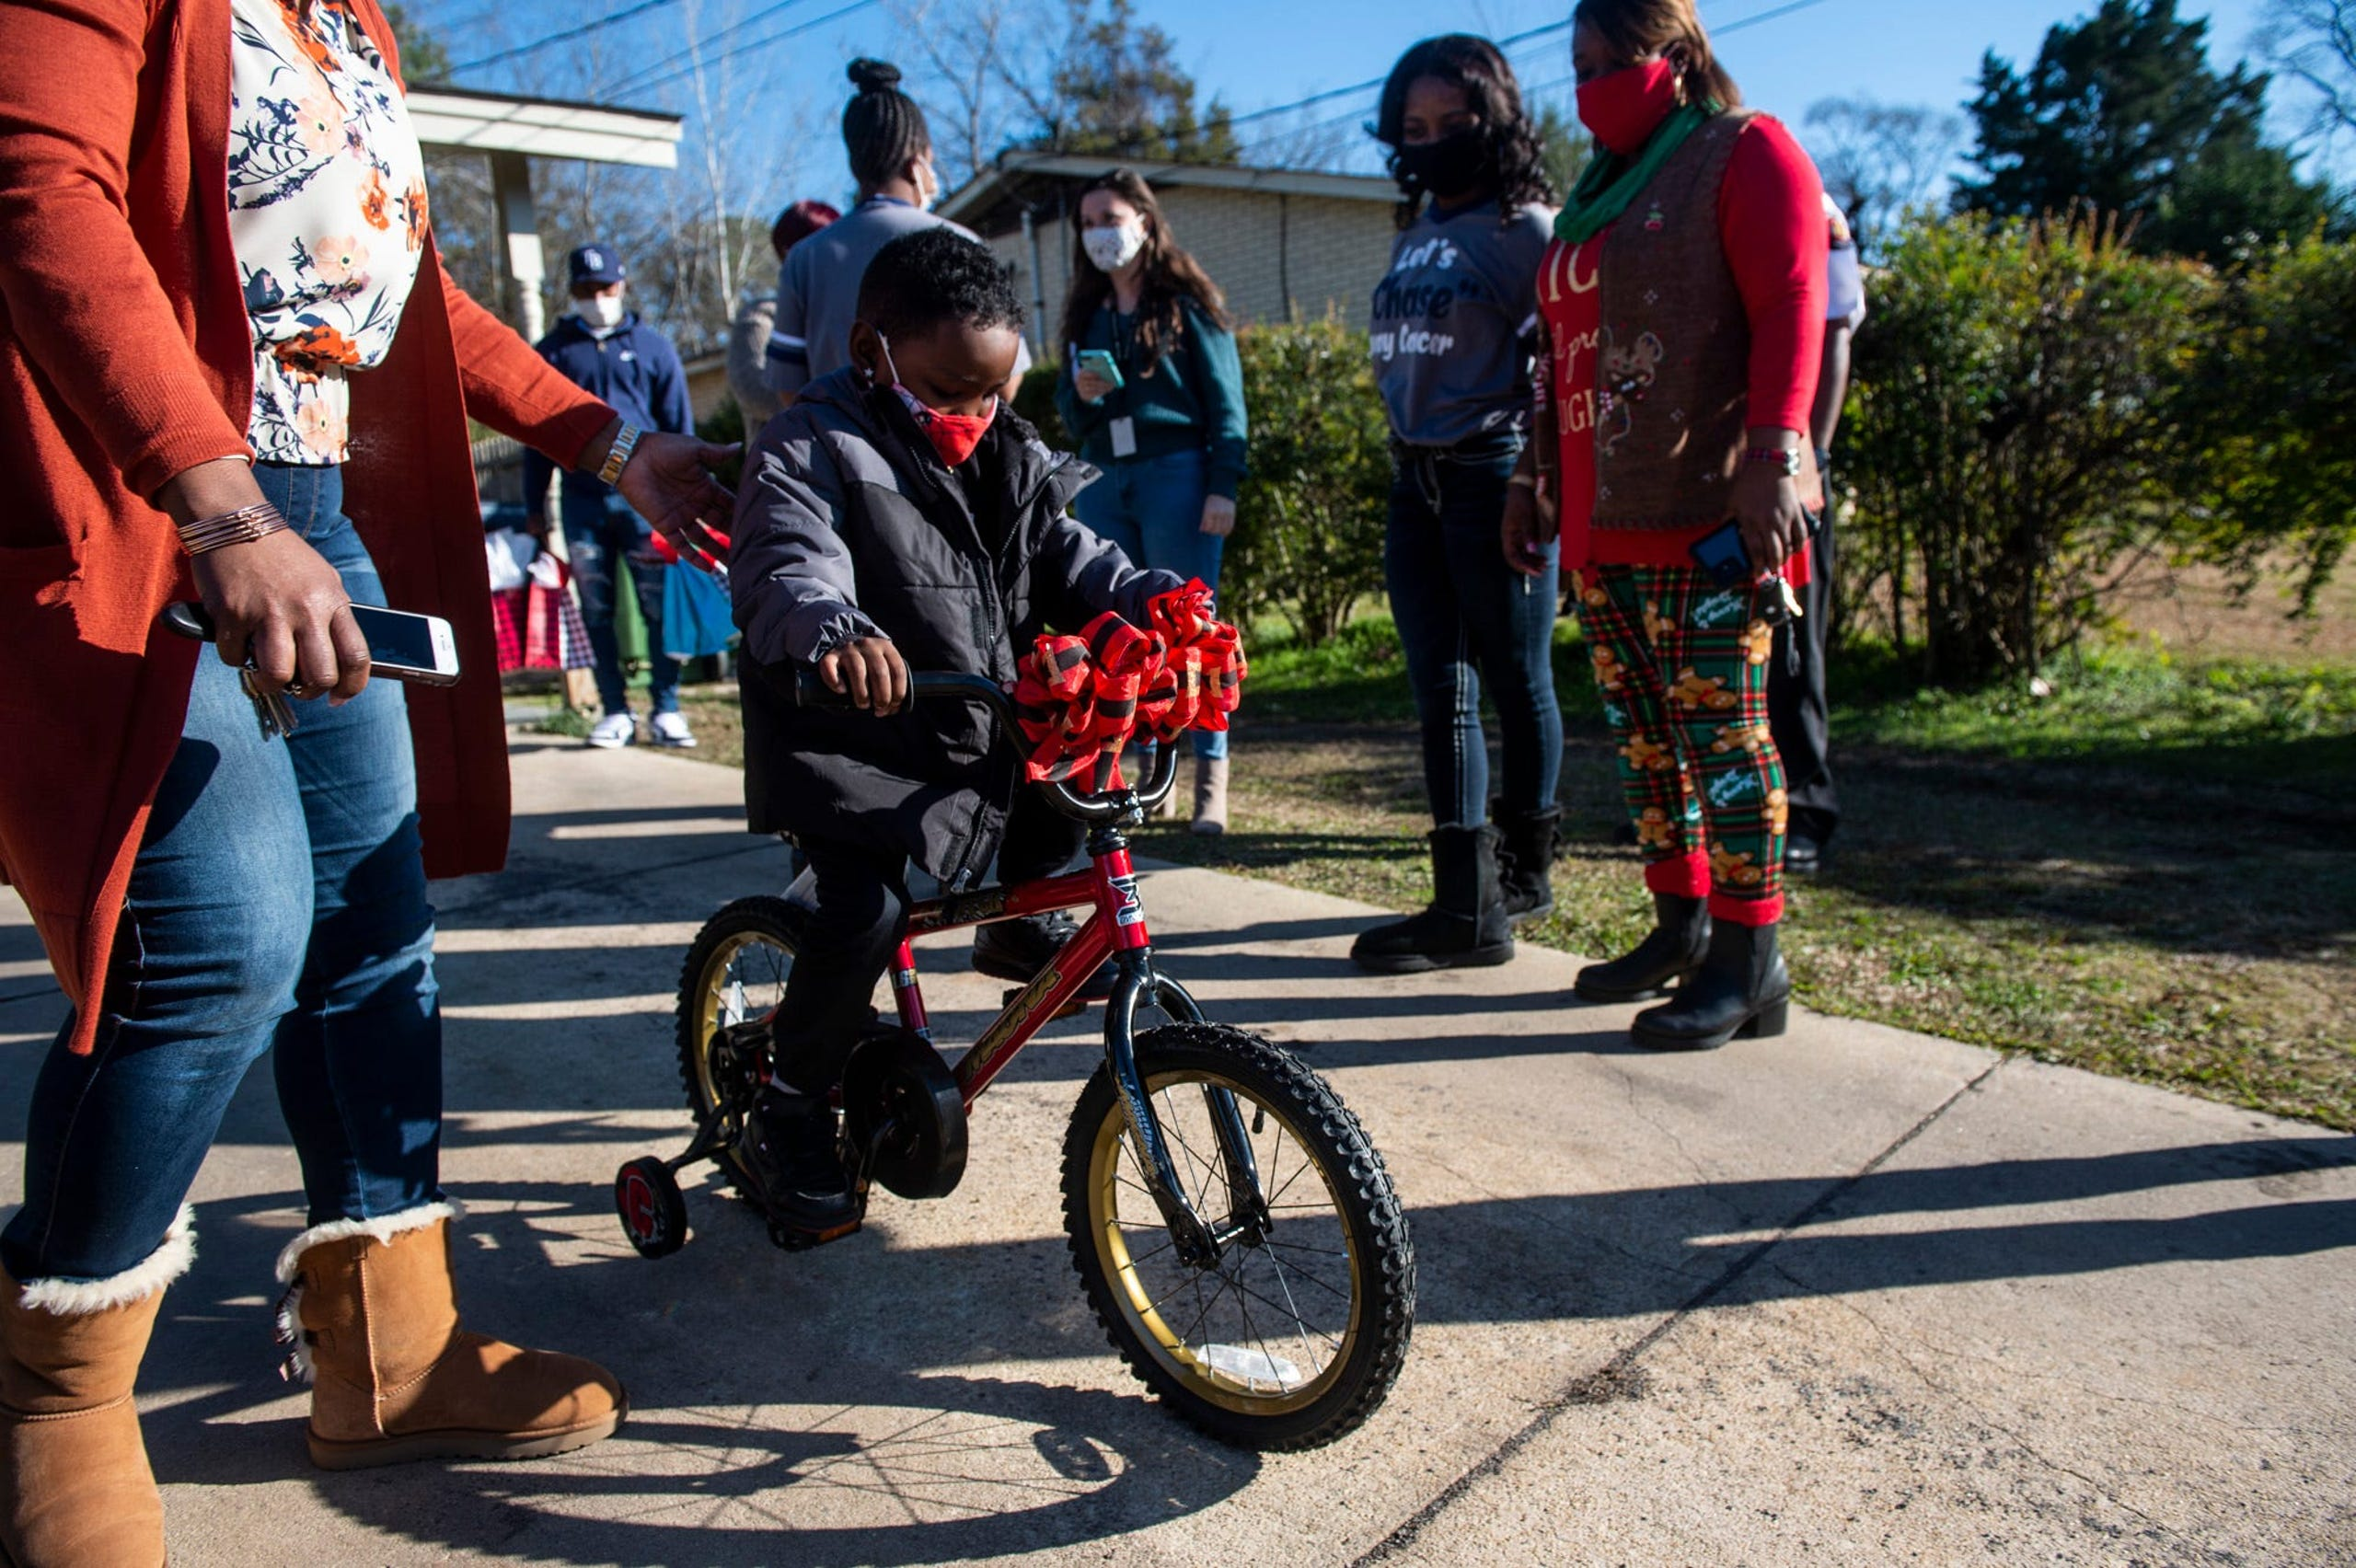 Caulio Mclemore tests out his new bike in Montgomery, Ala., on Monday, Dec. 21, 2020. Caulio is battling Leukemia and Chase Perine, his classmate decided to help get him presents for Christmas.